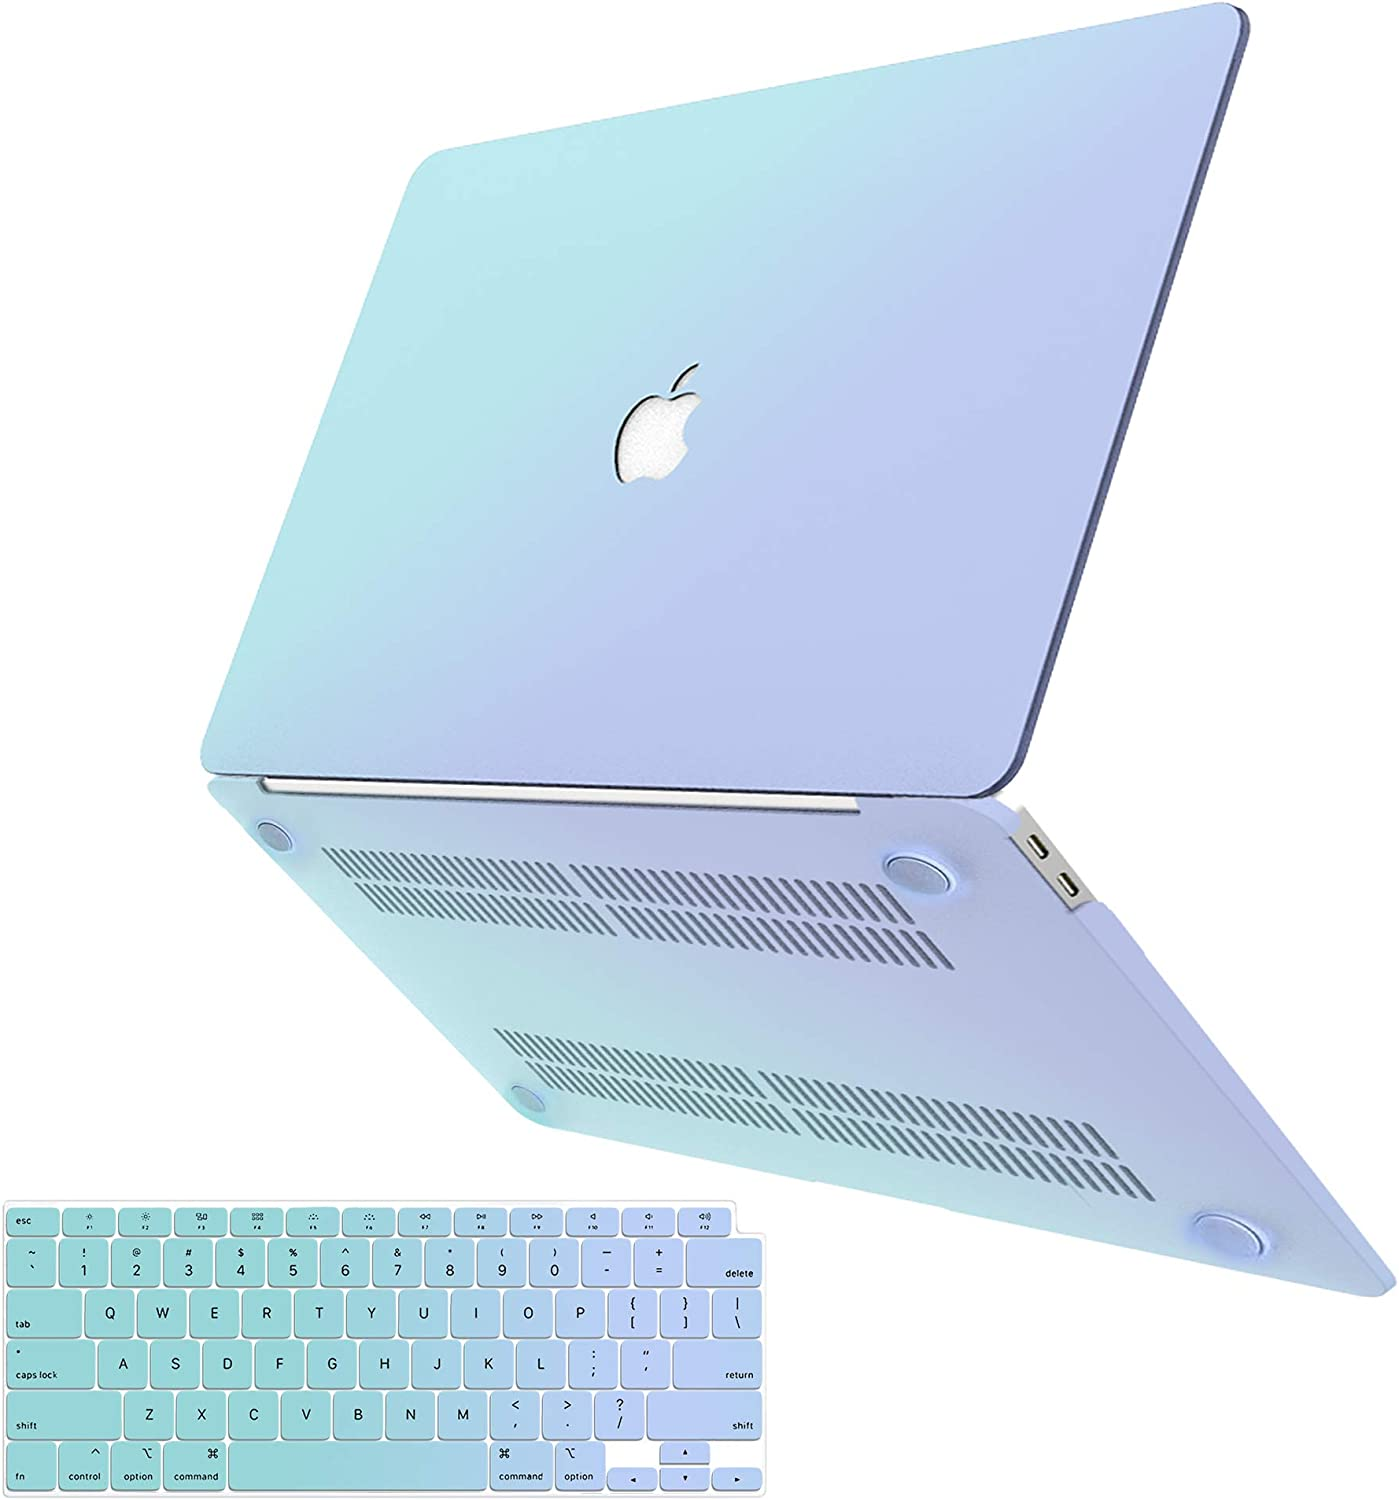 MacBook Pro 13 Inch Case 2020 2019 2018 2017 2016 A2251 A2289 A2159 A1706 A1989 A1708, G JGOO MacBook Pro 2020 Case, Hard Shell Case + Keyboard Cover for Mac Pro 13 with/Without Touch Bar, Blue Green